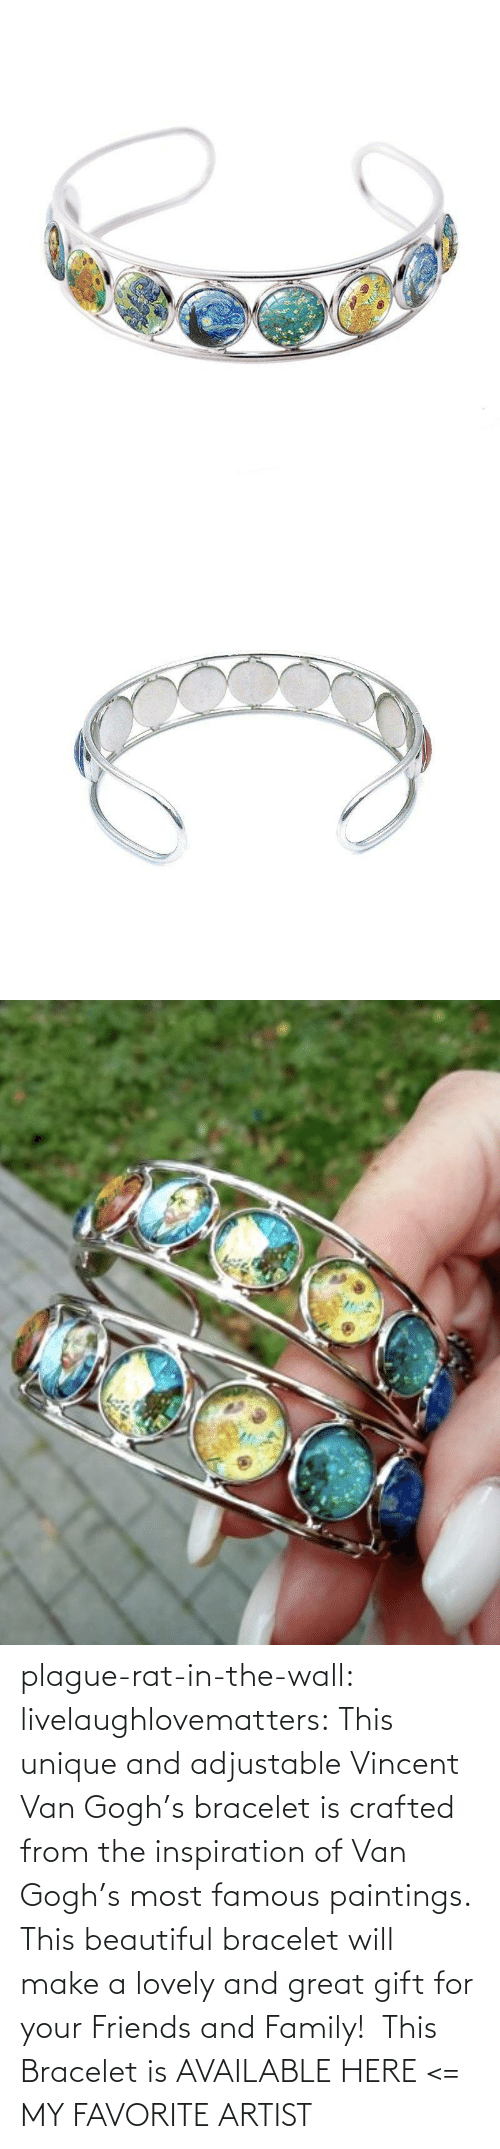 van gogh: plague-rat-in-the-wall:  livelaughlovematters: This unique and adjustable Vincent Van Gogh's bracelet is crafted from the inspiration of Van Gogh's most famous paintings. This beautiful bracelet will make a lovely and great gift for your Friends and Family!  This Bracelet is AVAILABLE HERE <=  MY FAVORITE ARTIST